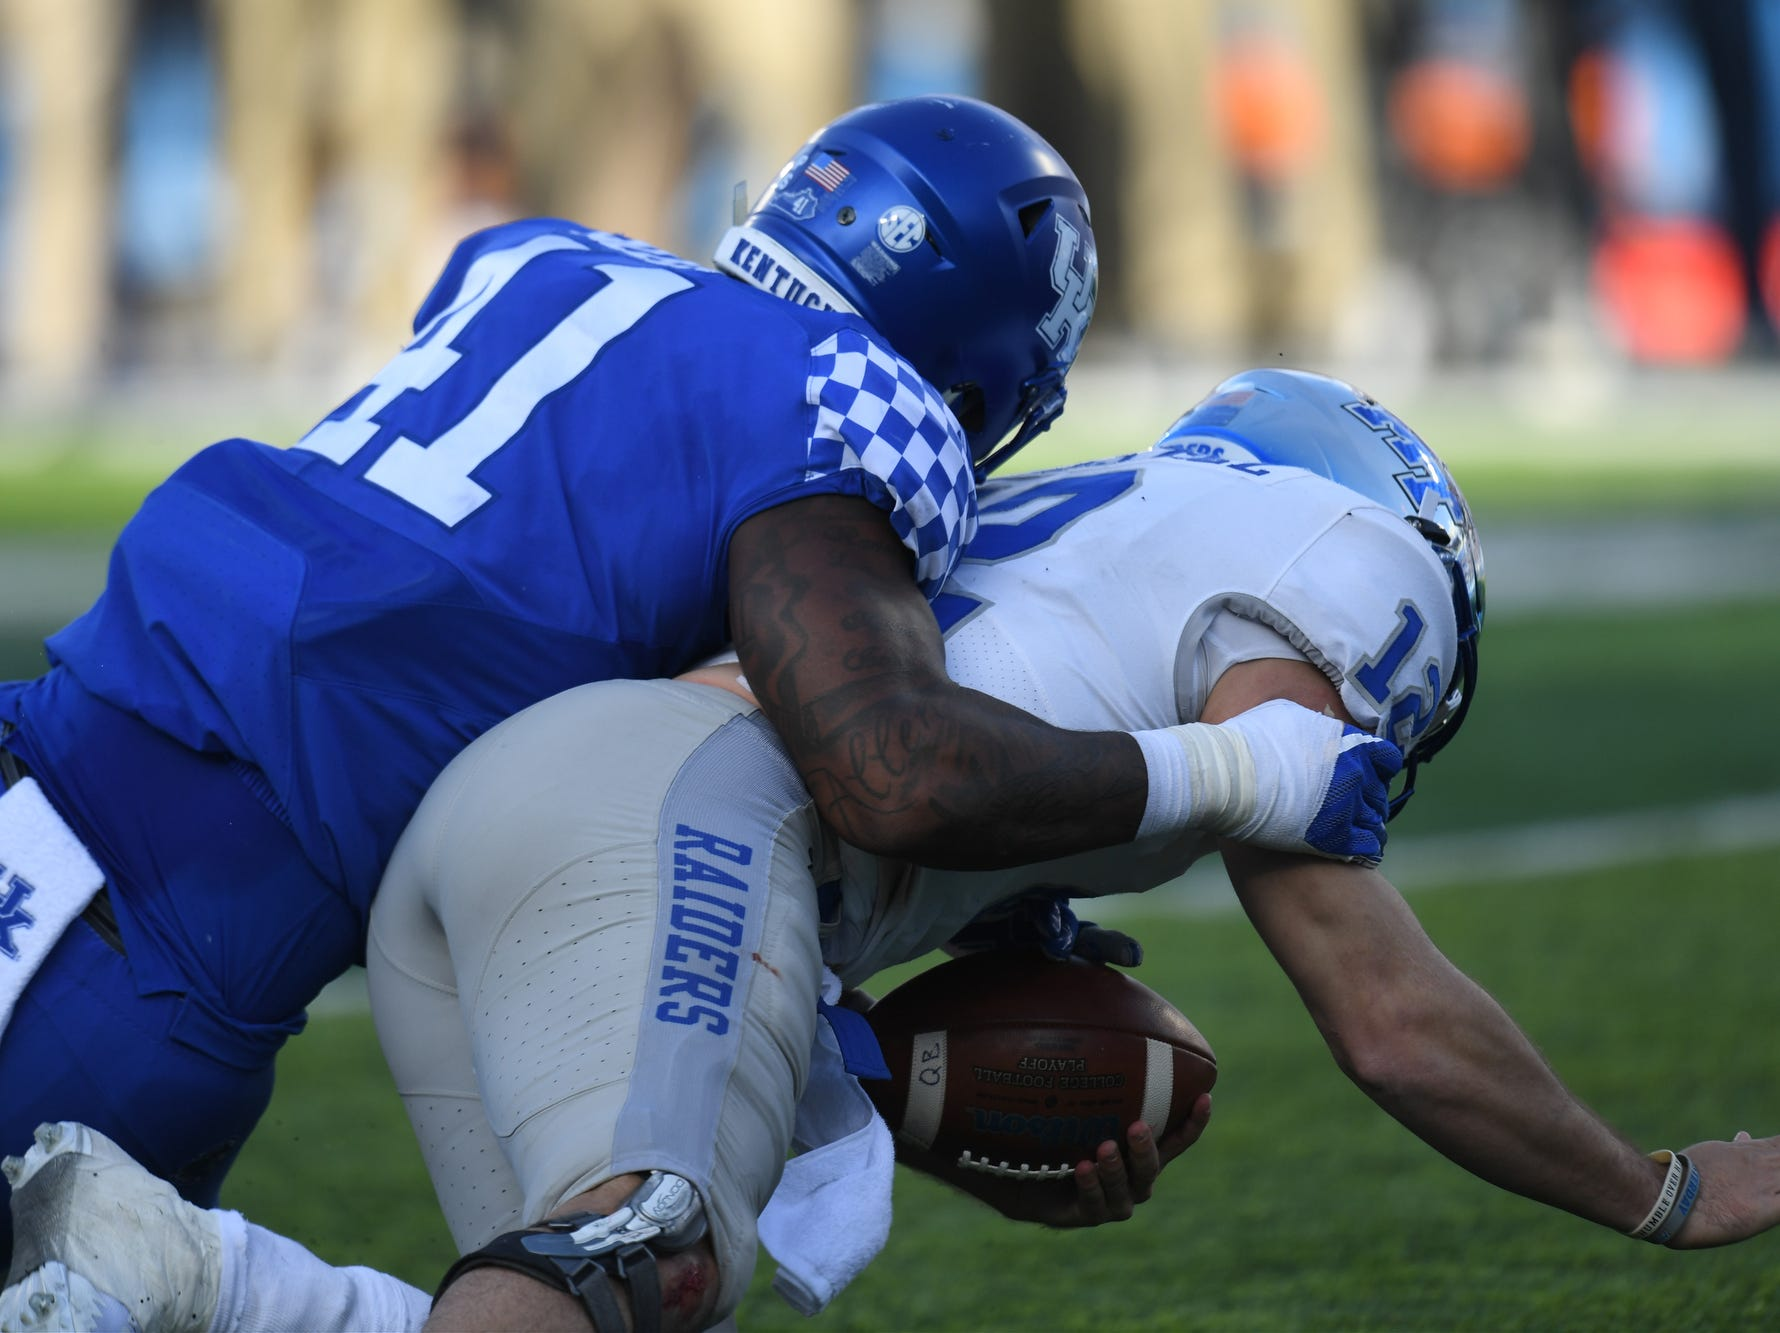 UK DE Josh Allen gets a sack during the University of Kentucky football game against Middle Tennessee at Kroger Field in Lexington, Kentucky on Saturday, November 17, 2018.